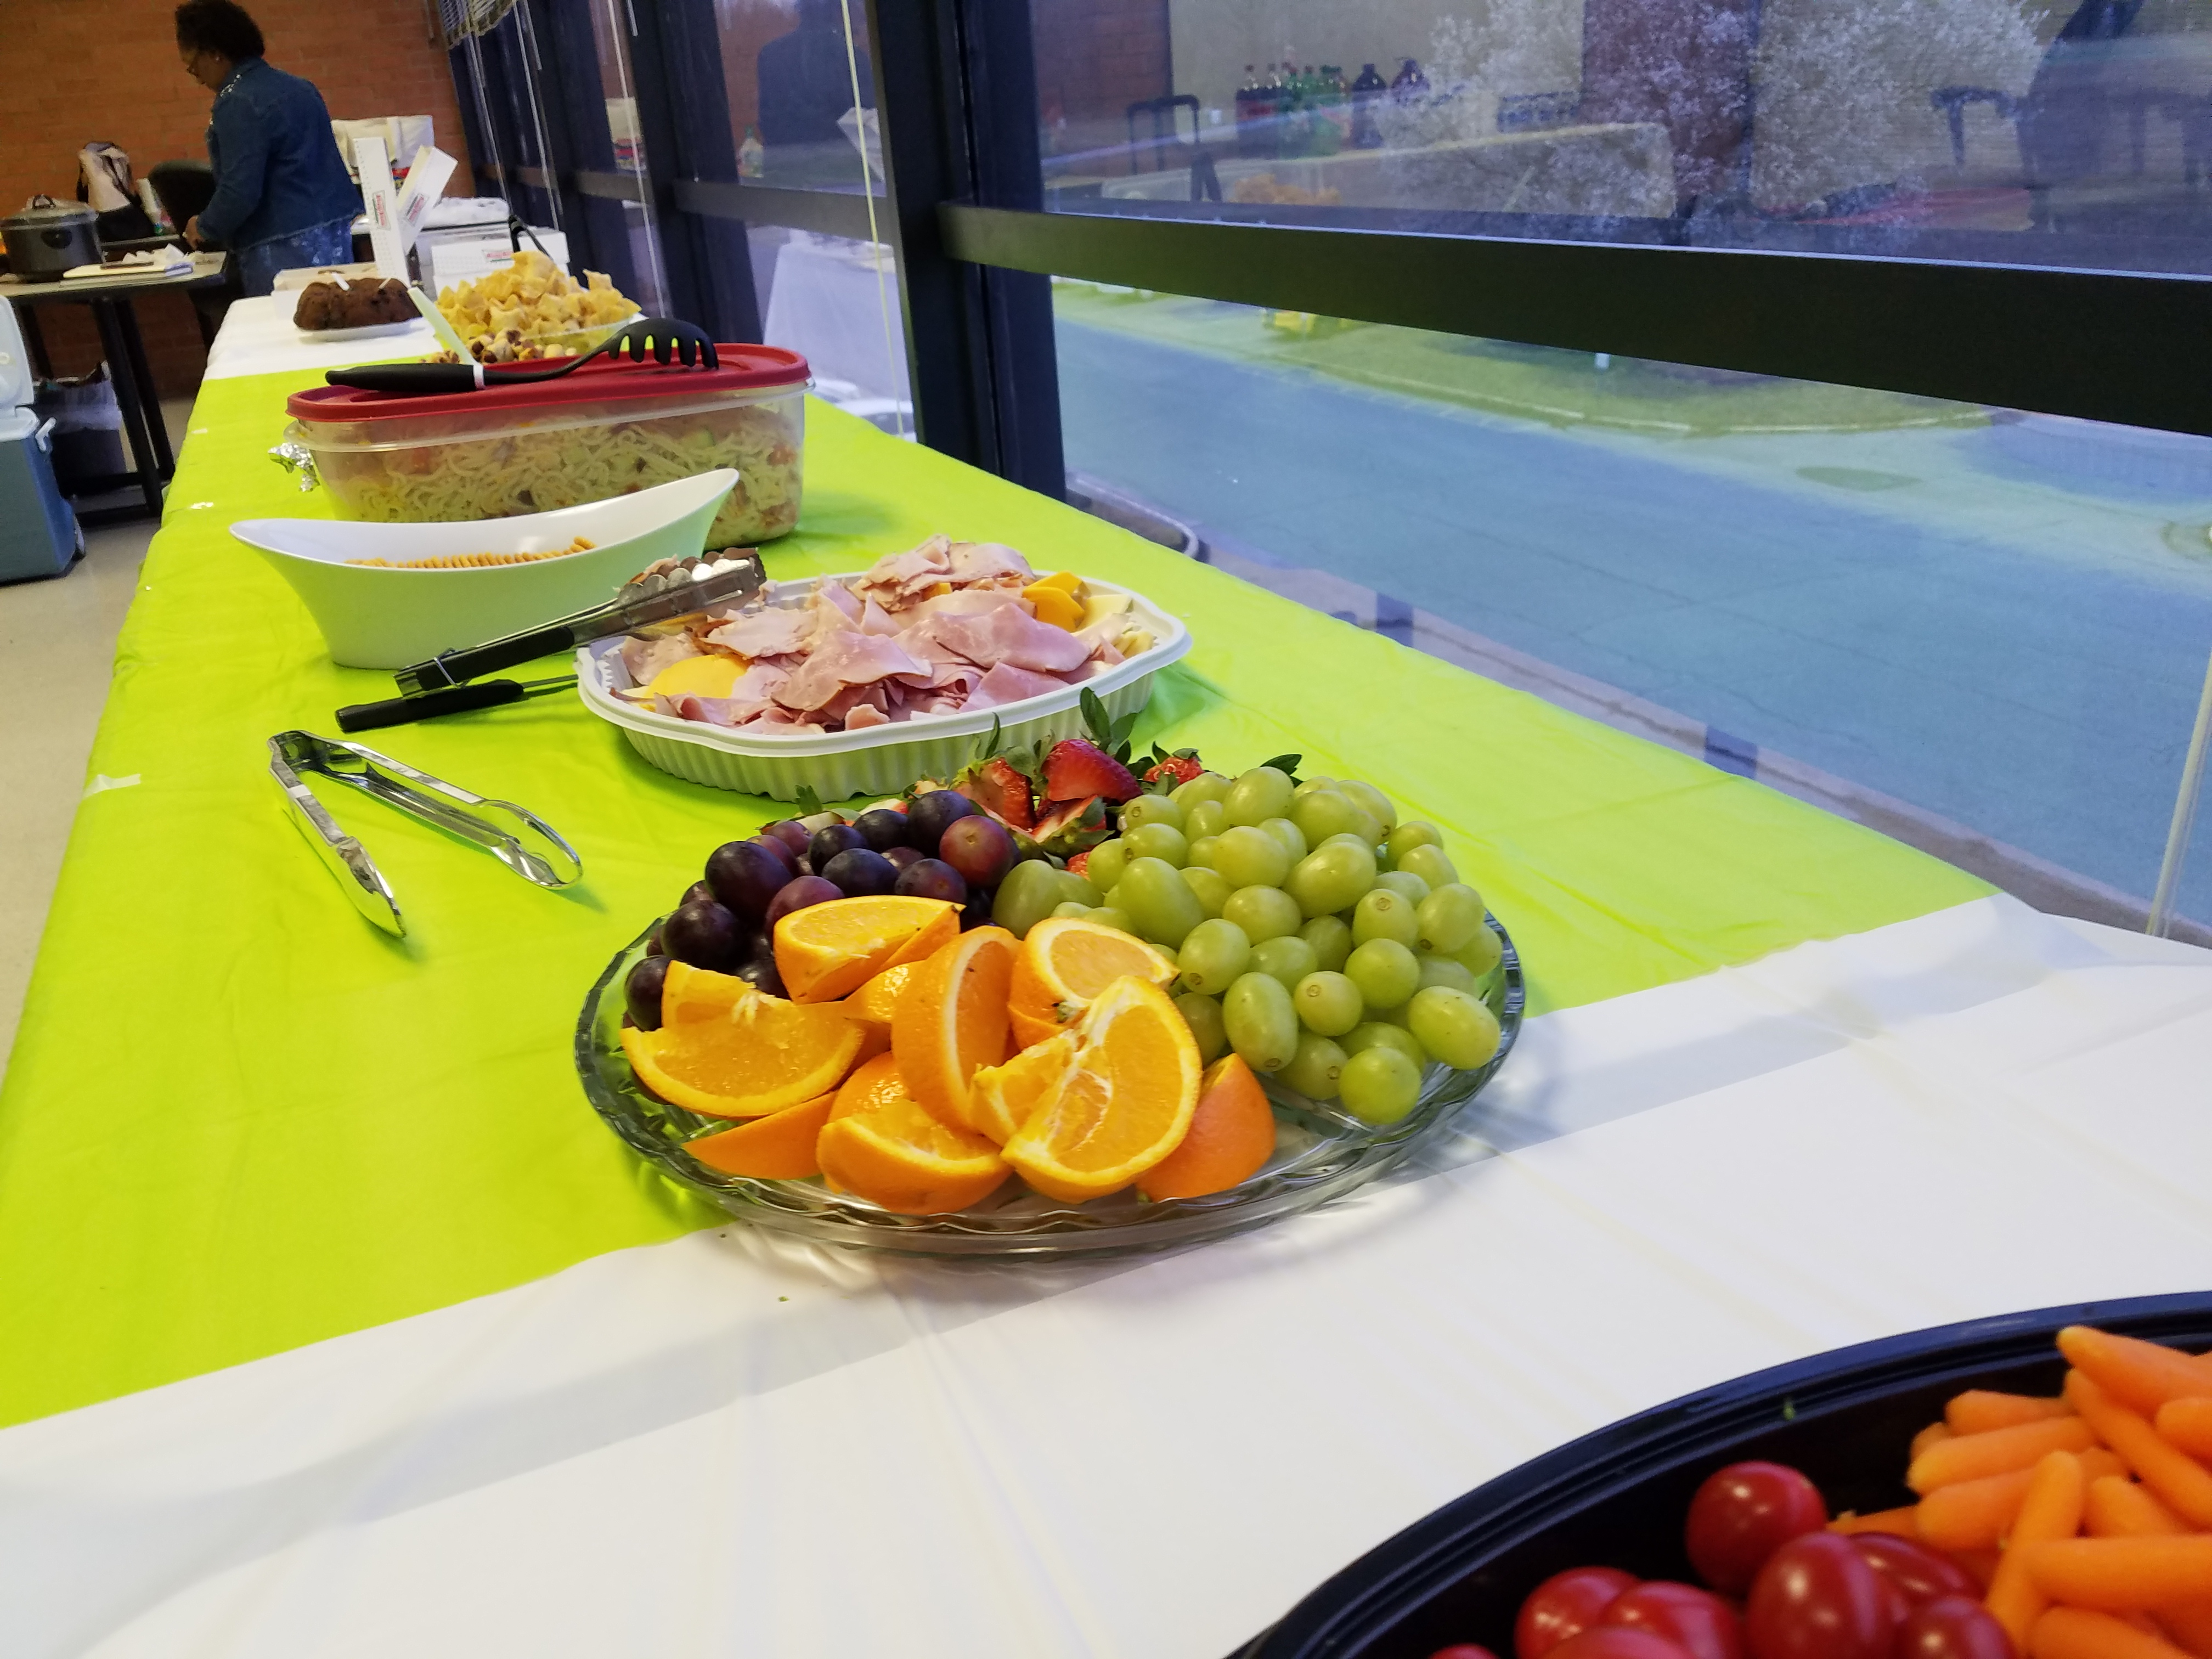 During Employee Appreciation Day, the DIDD West Regional Office served healthy snacks to approximately 90 employees.